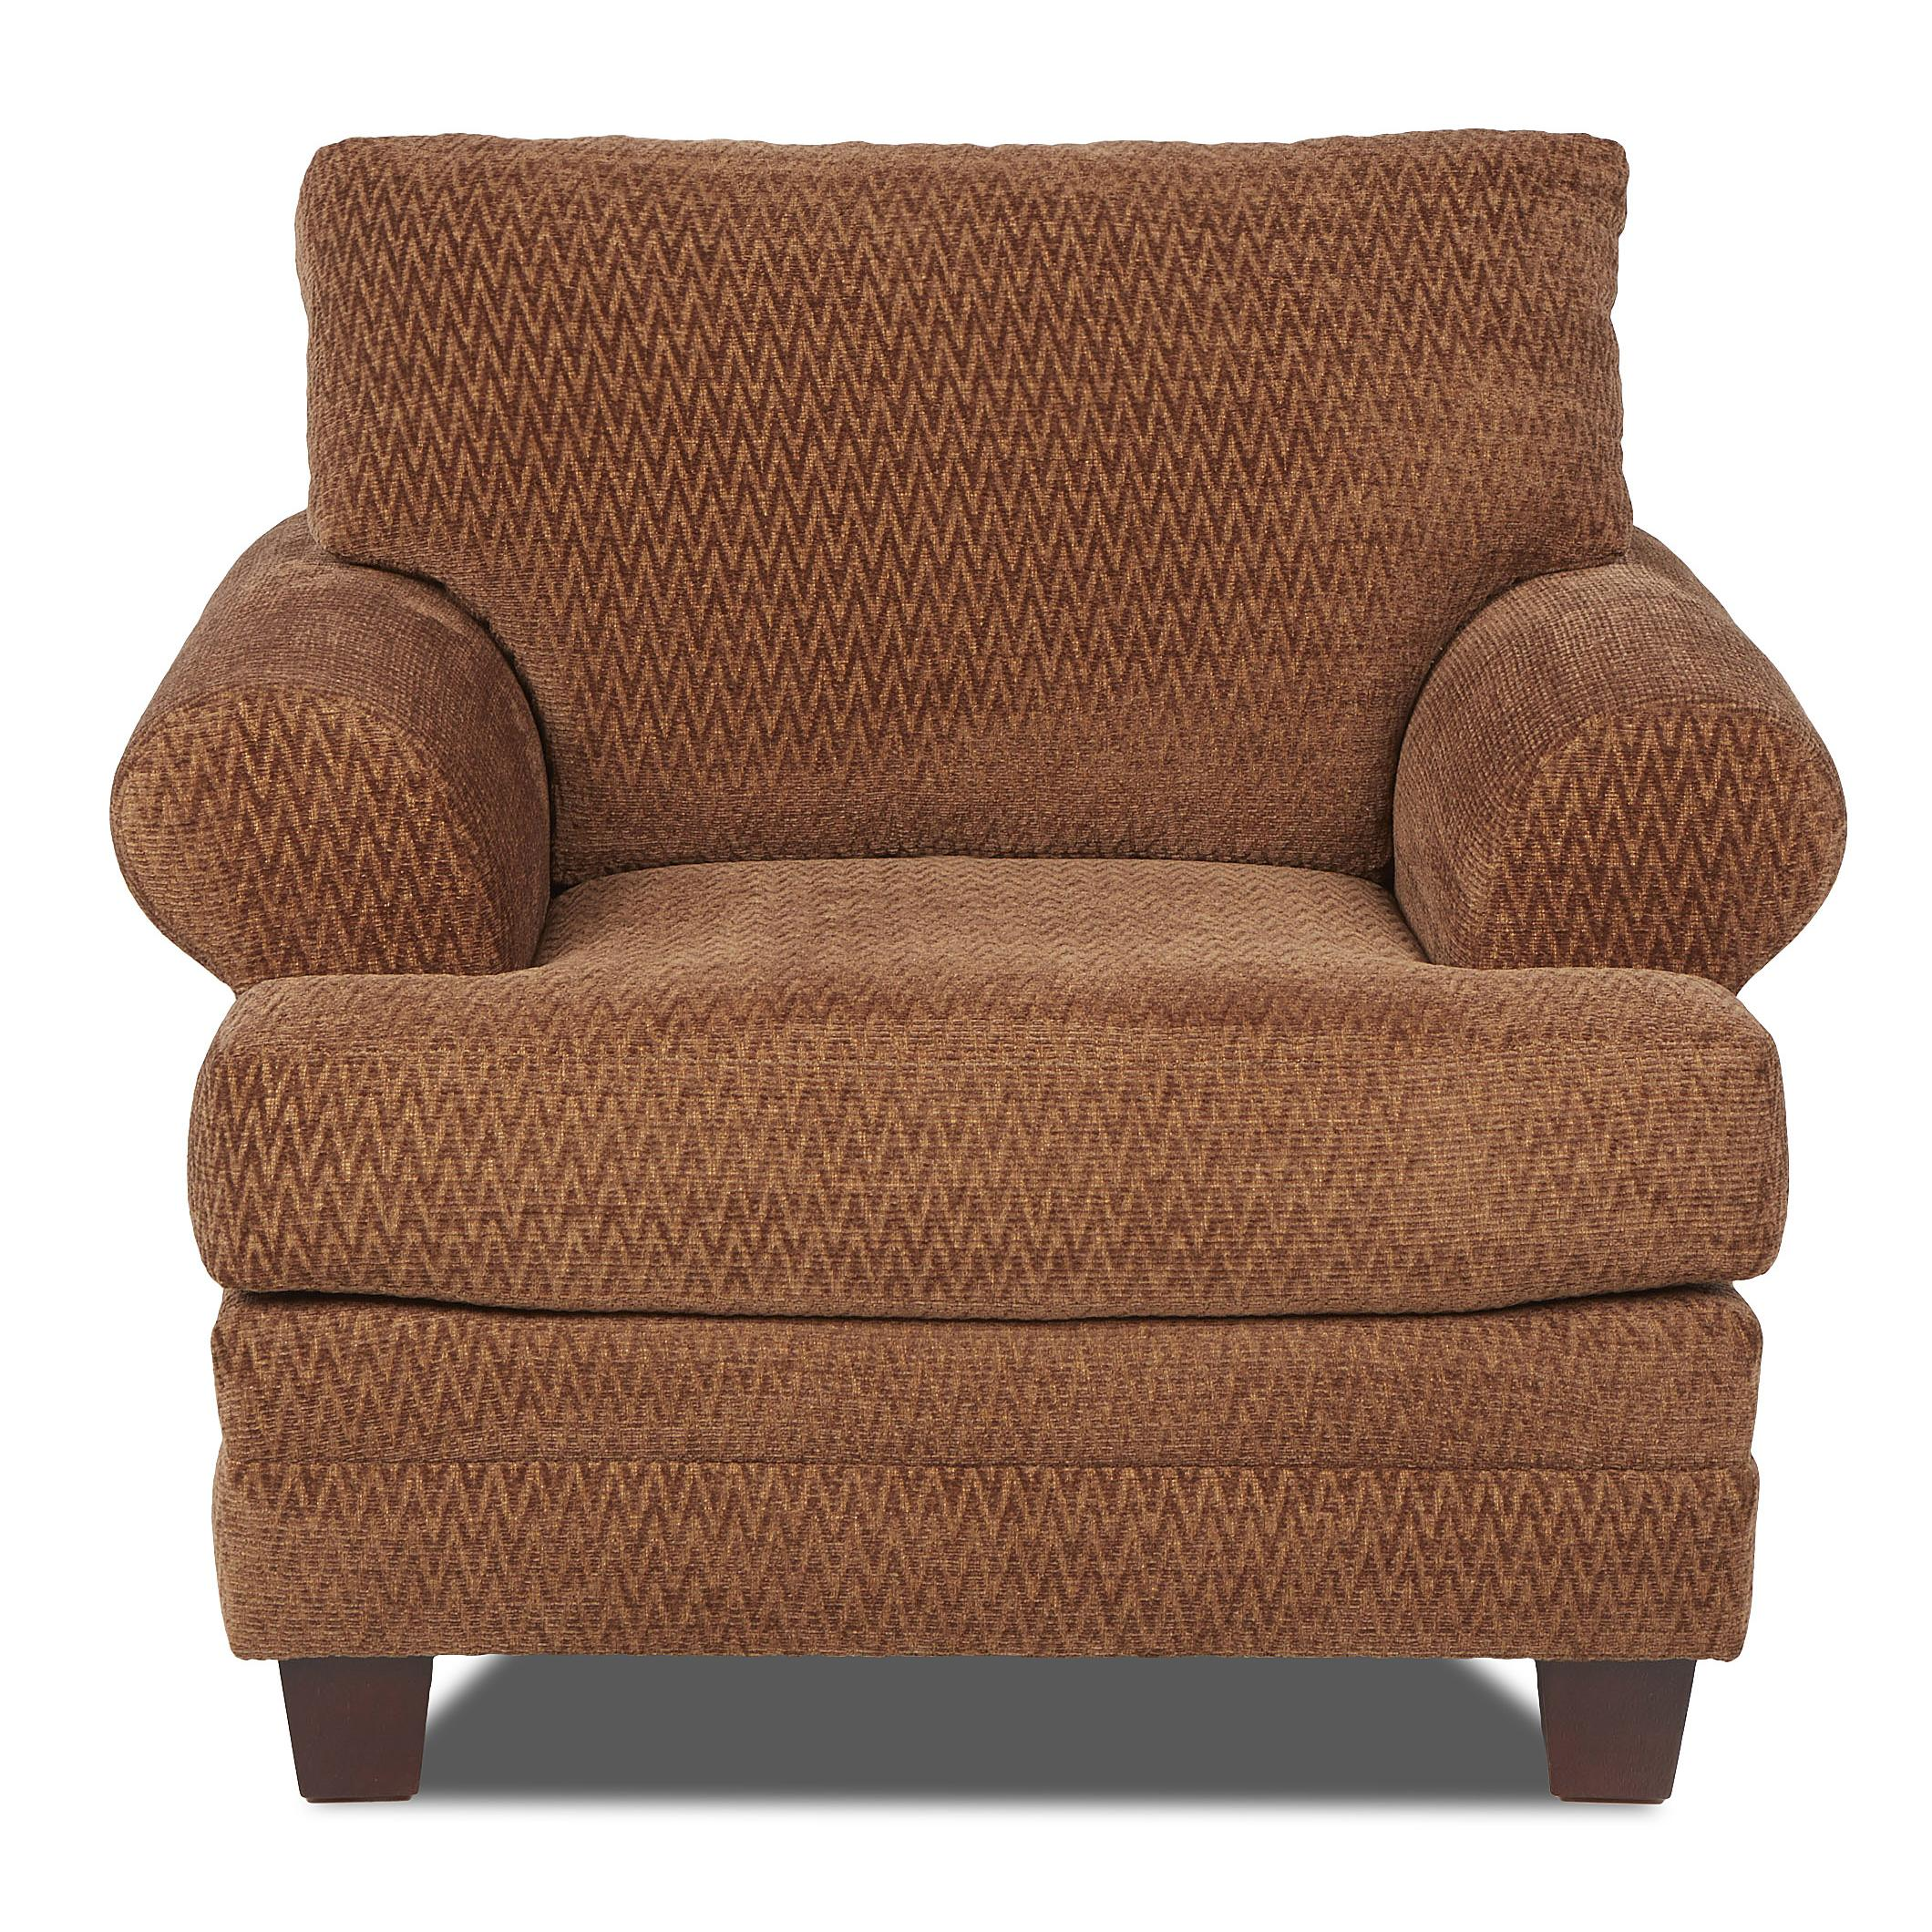 Casual Upholstered Chair with Attached Back Pillows